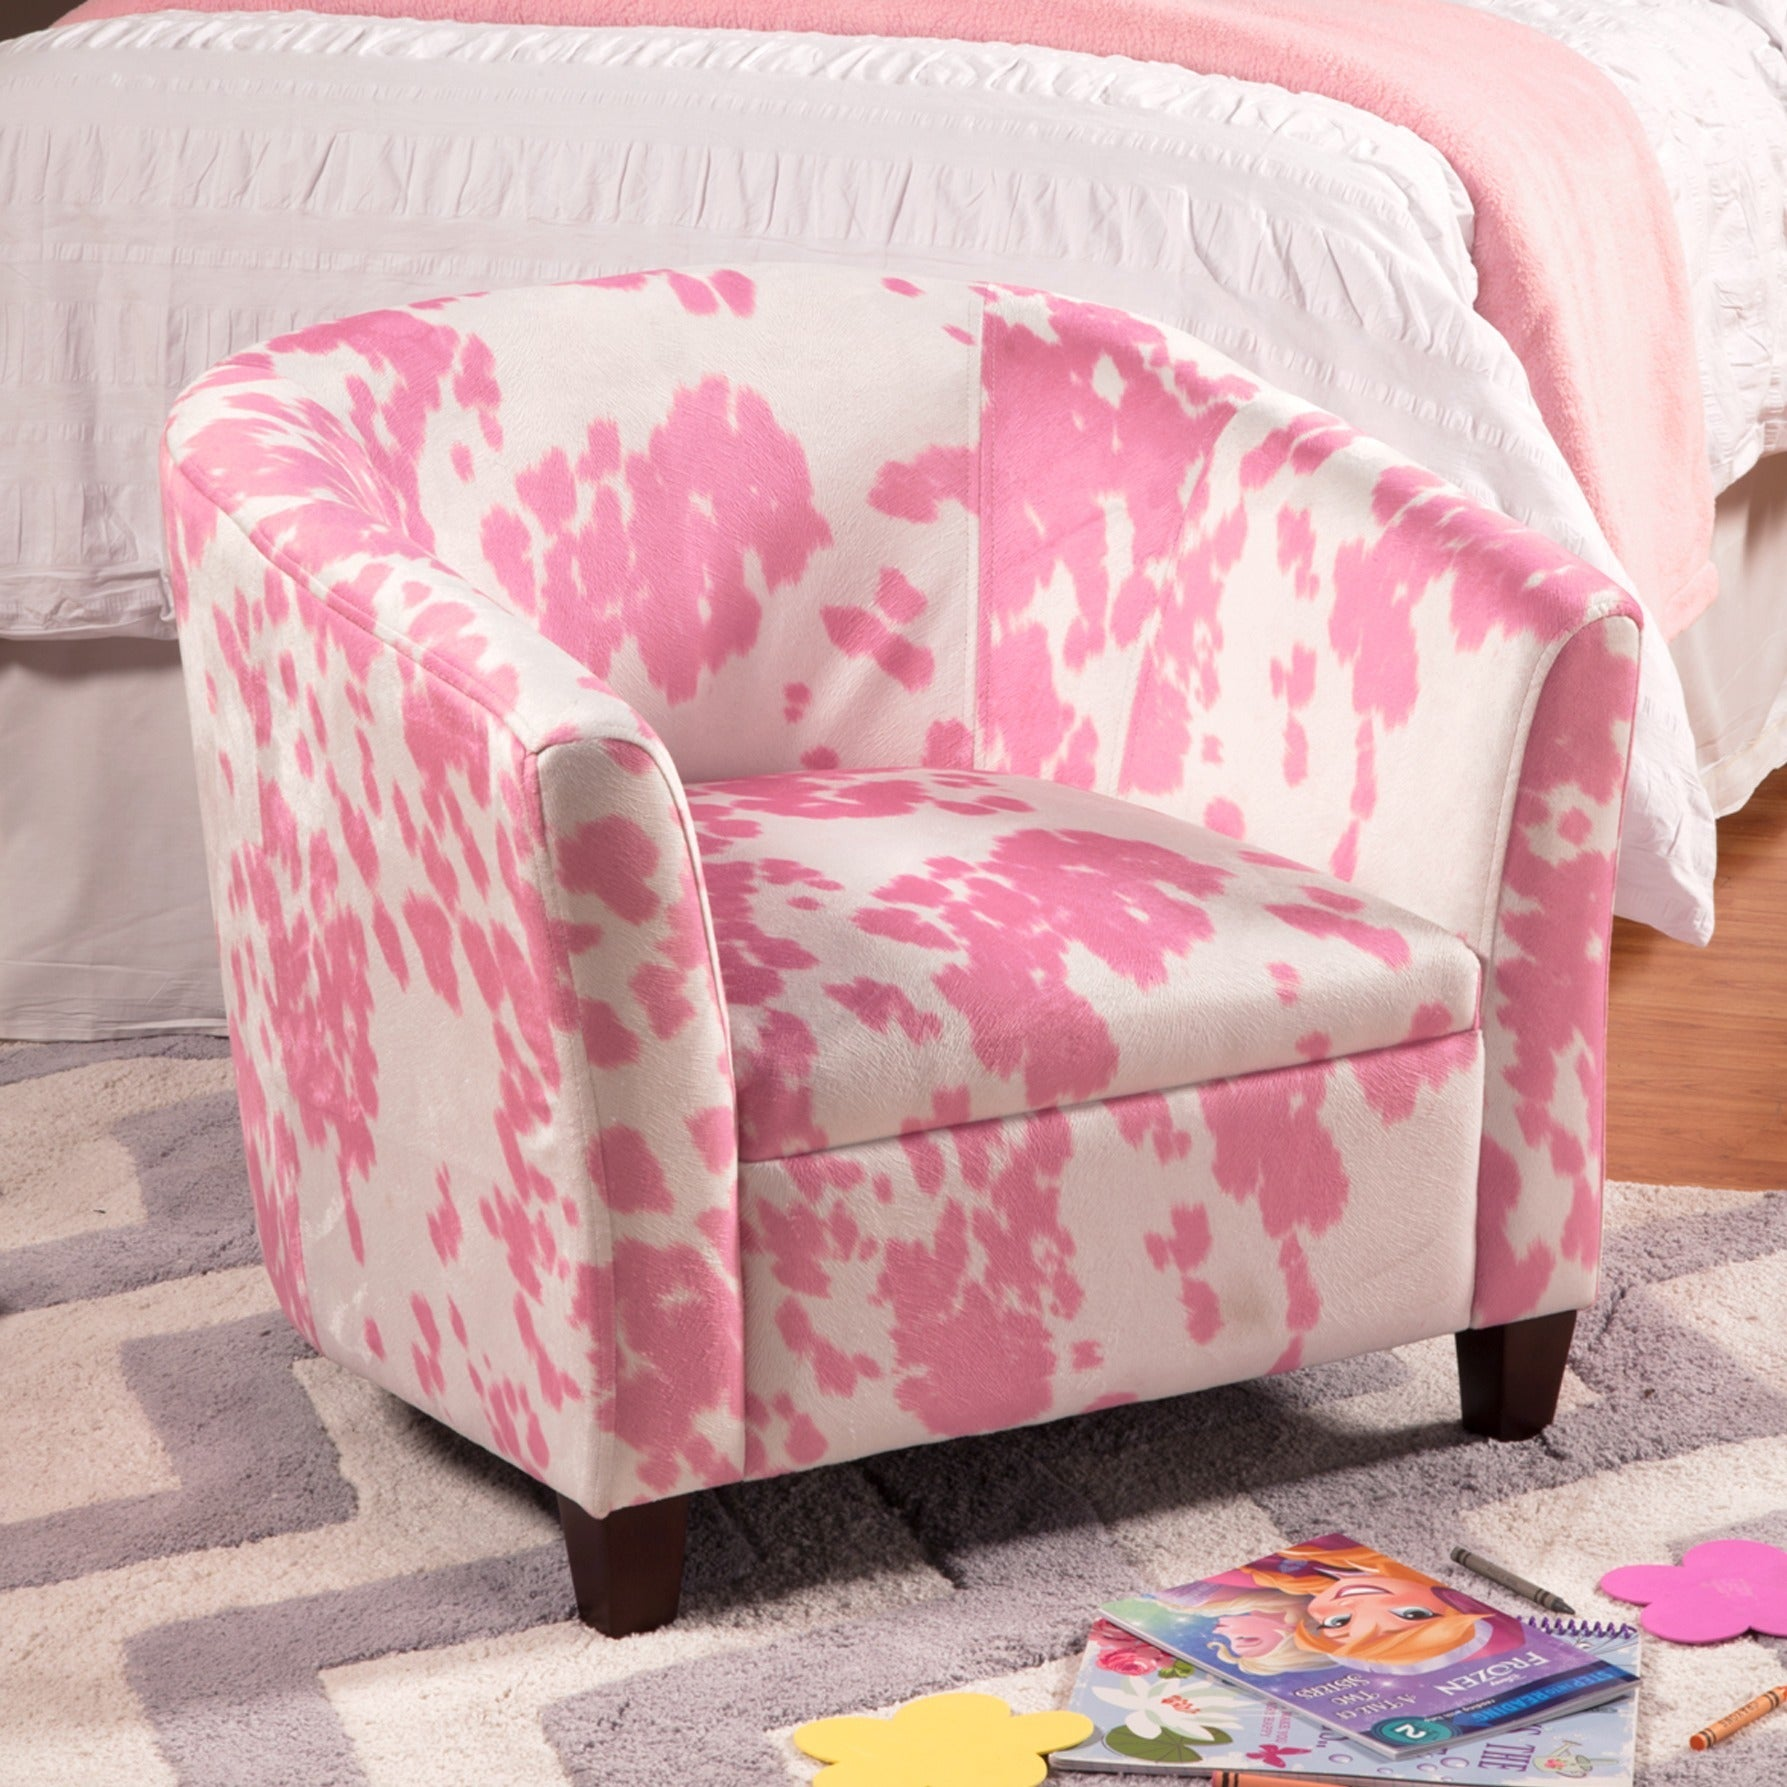 HomePop Kids' Pink Moo Moo Chair (Pink and white soft tou...